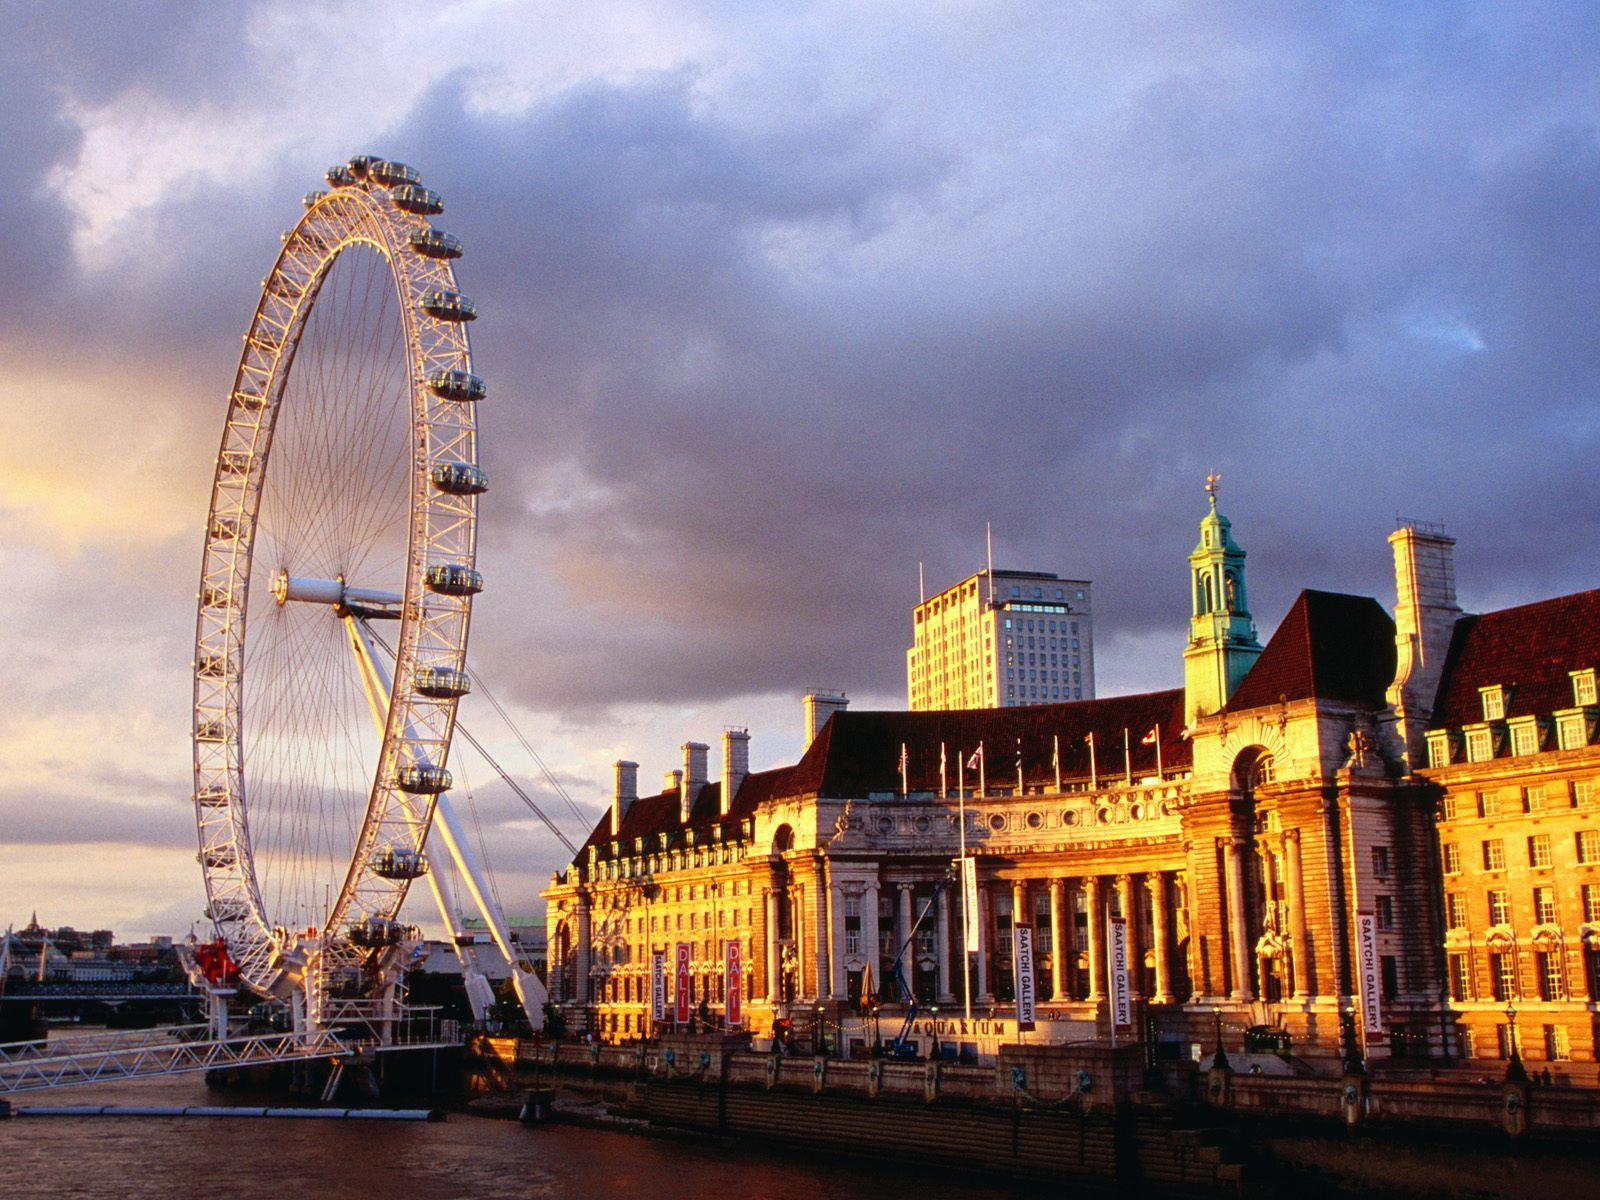 London United Kingdom  city images : London, United Kingdom, London Eye at evening